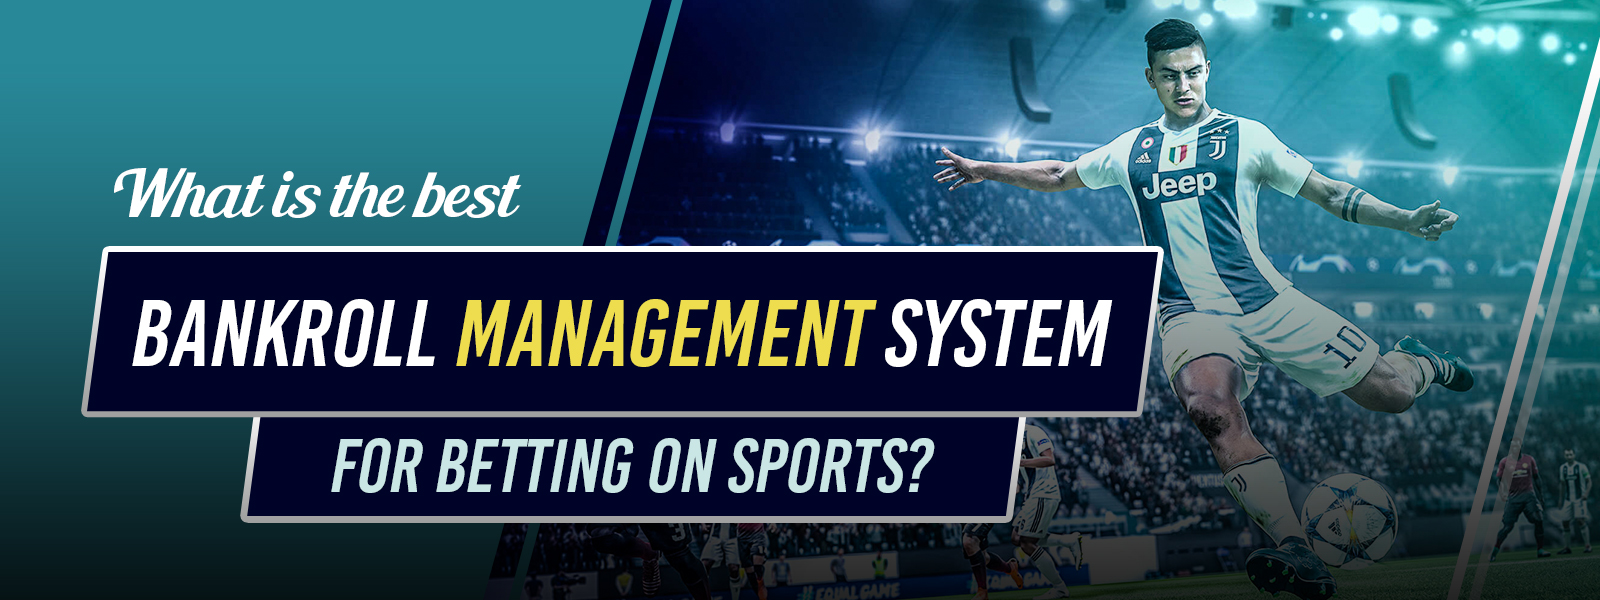 What Is The Best Bankroll Management System For Betting On Sports?